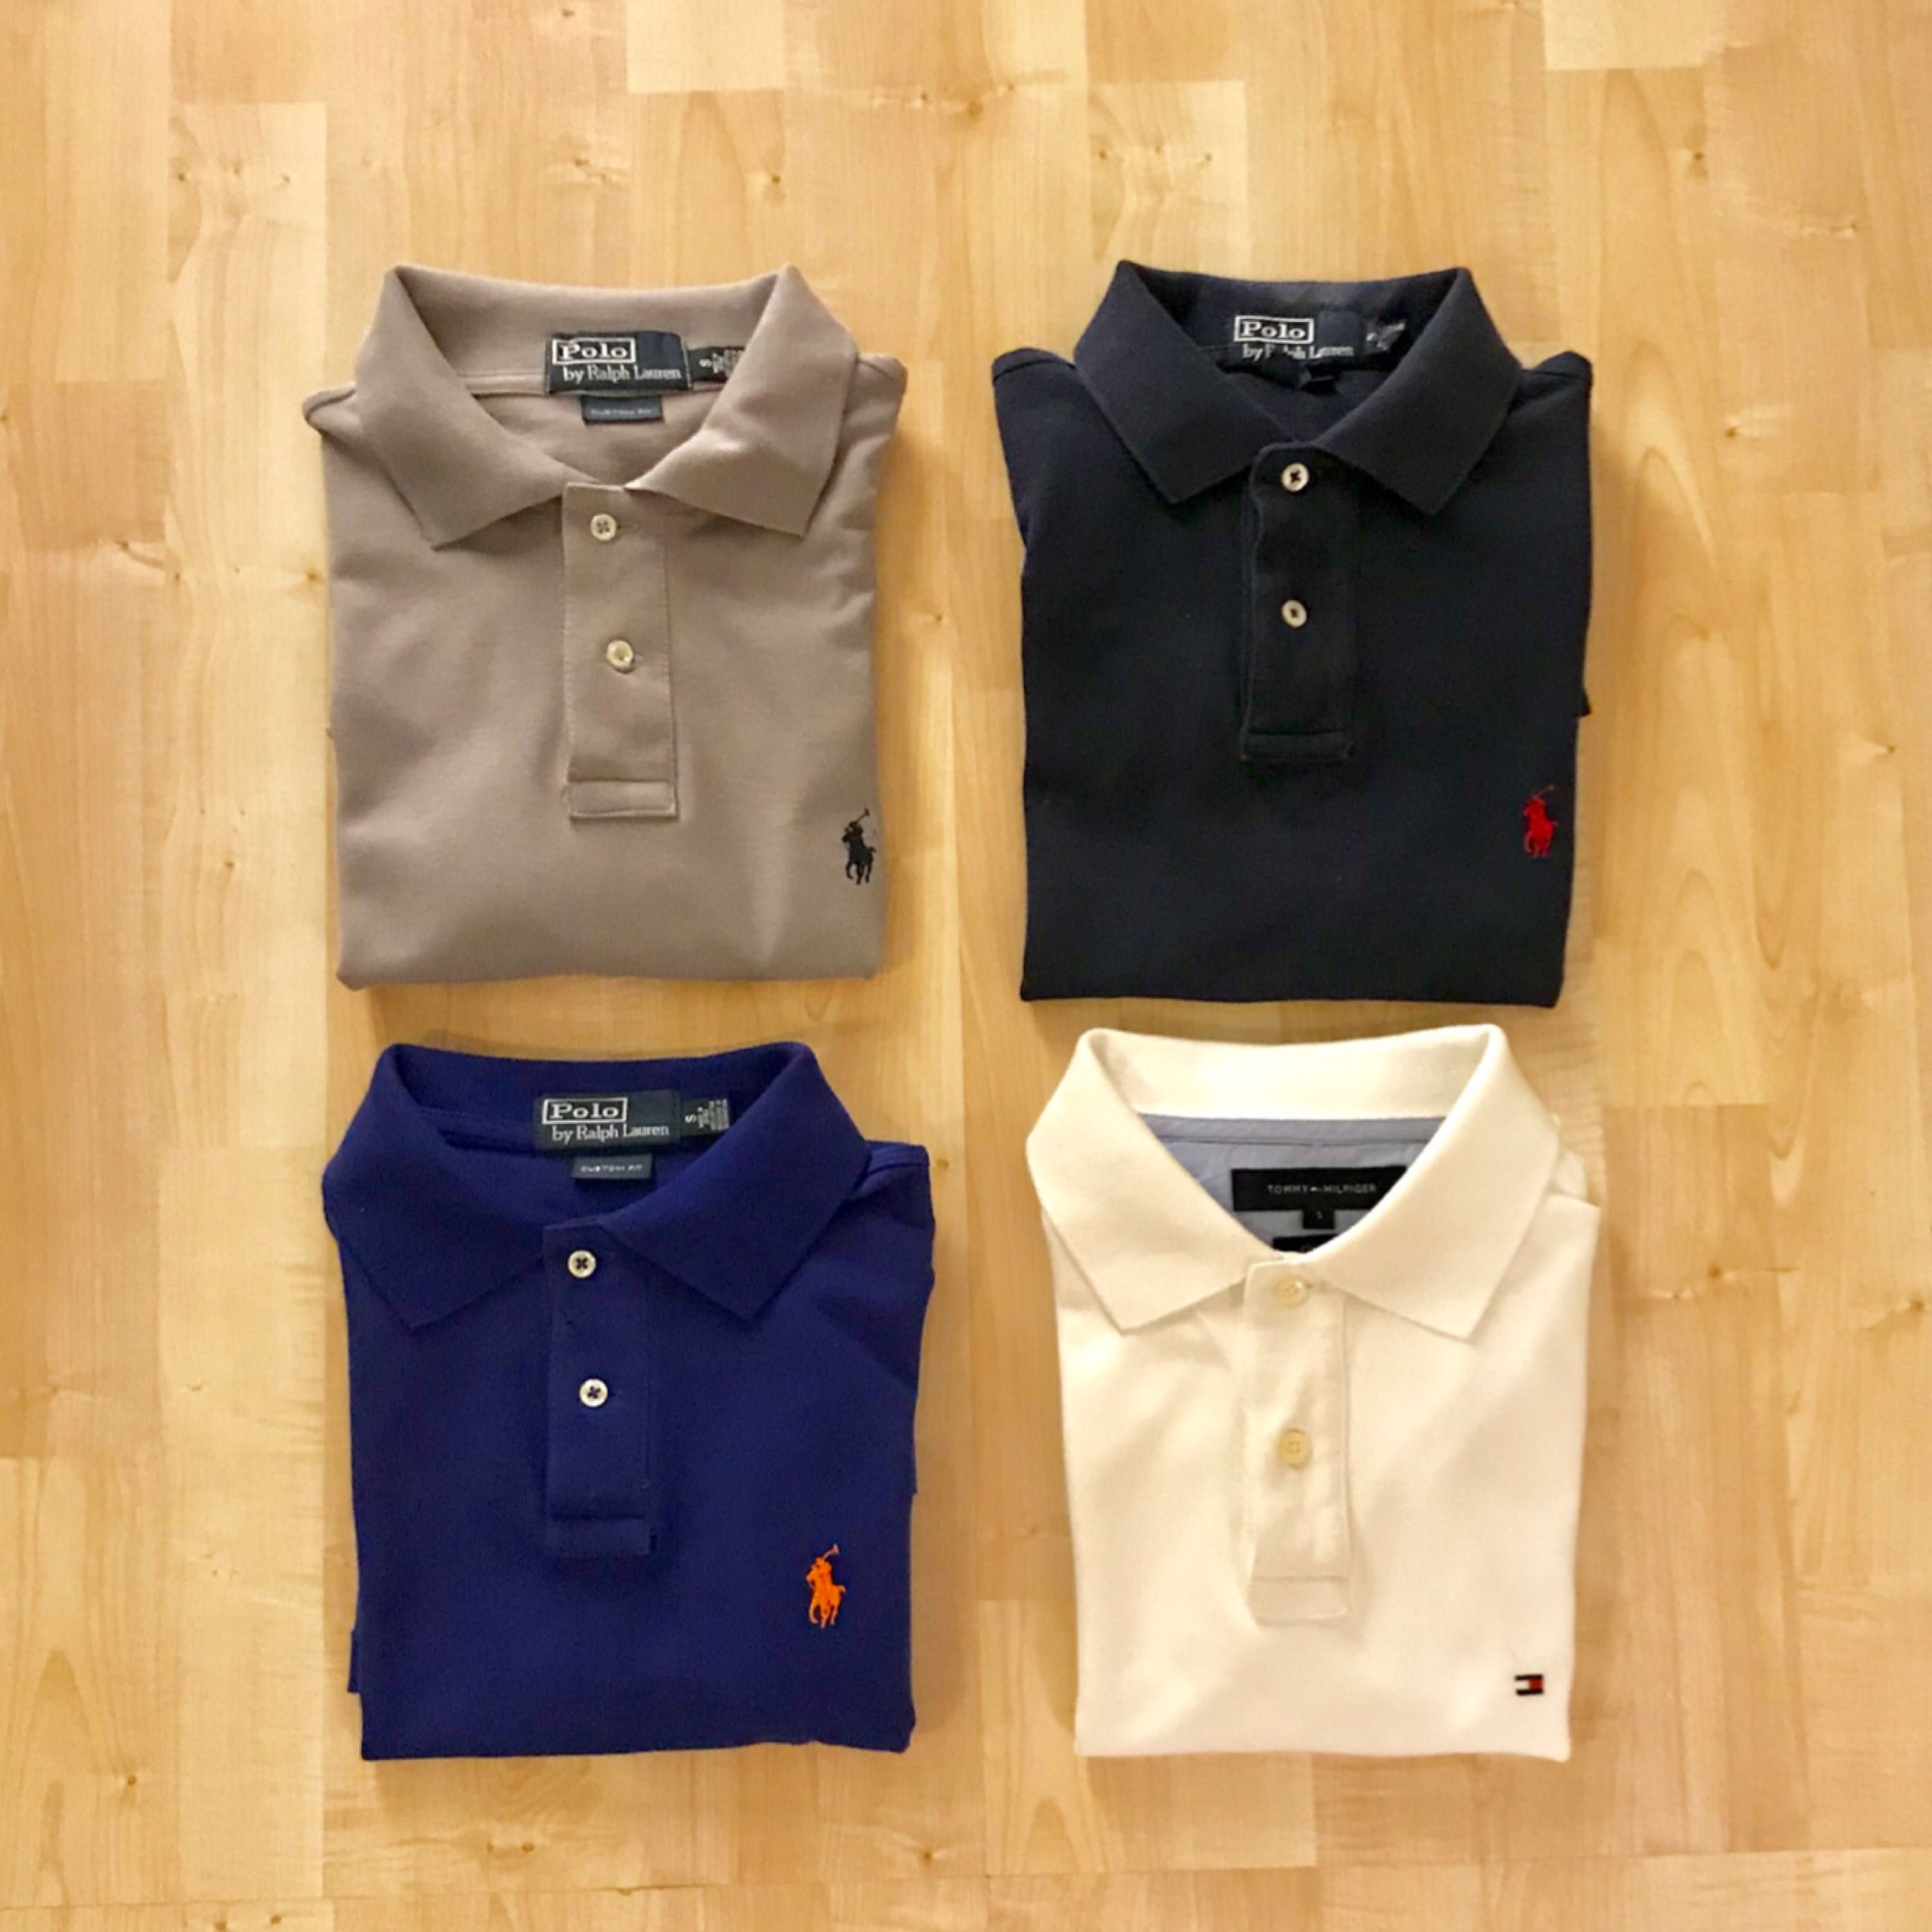 3 pieces of original, custom fit Ralph Lauren piké Blue, Heather Grey and Newport Navy colours.  All in close to brand new condition. Fits you who are between 170cm - 178cm and on the slim athletic side.  Original price : 899 kr at Nordiska Kompaniet Selling for : 250kr a piece   Tommy Hilfiger piké in off white, brand new.  Selling at 150kr. Skjortor.